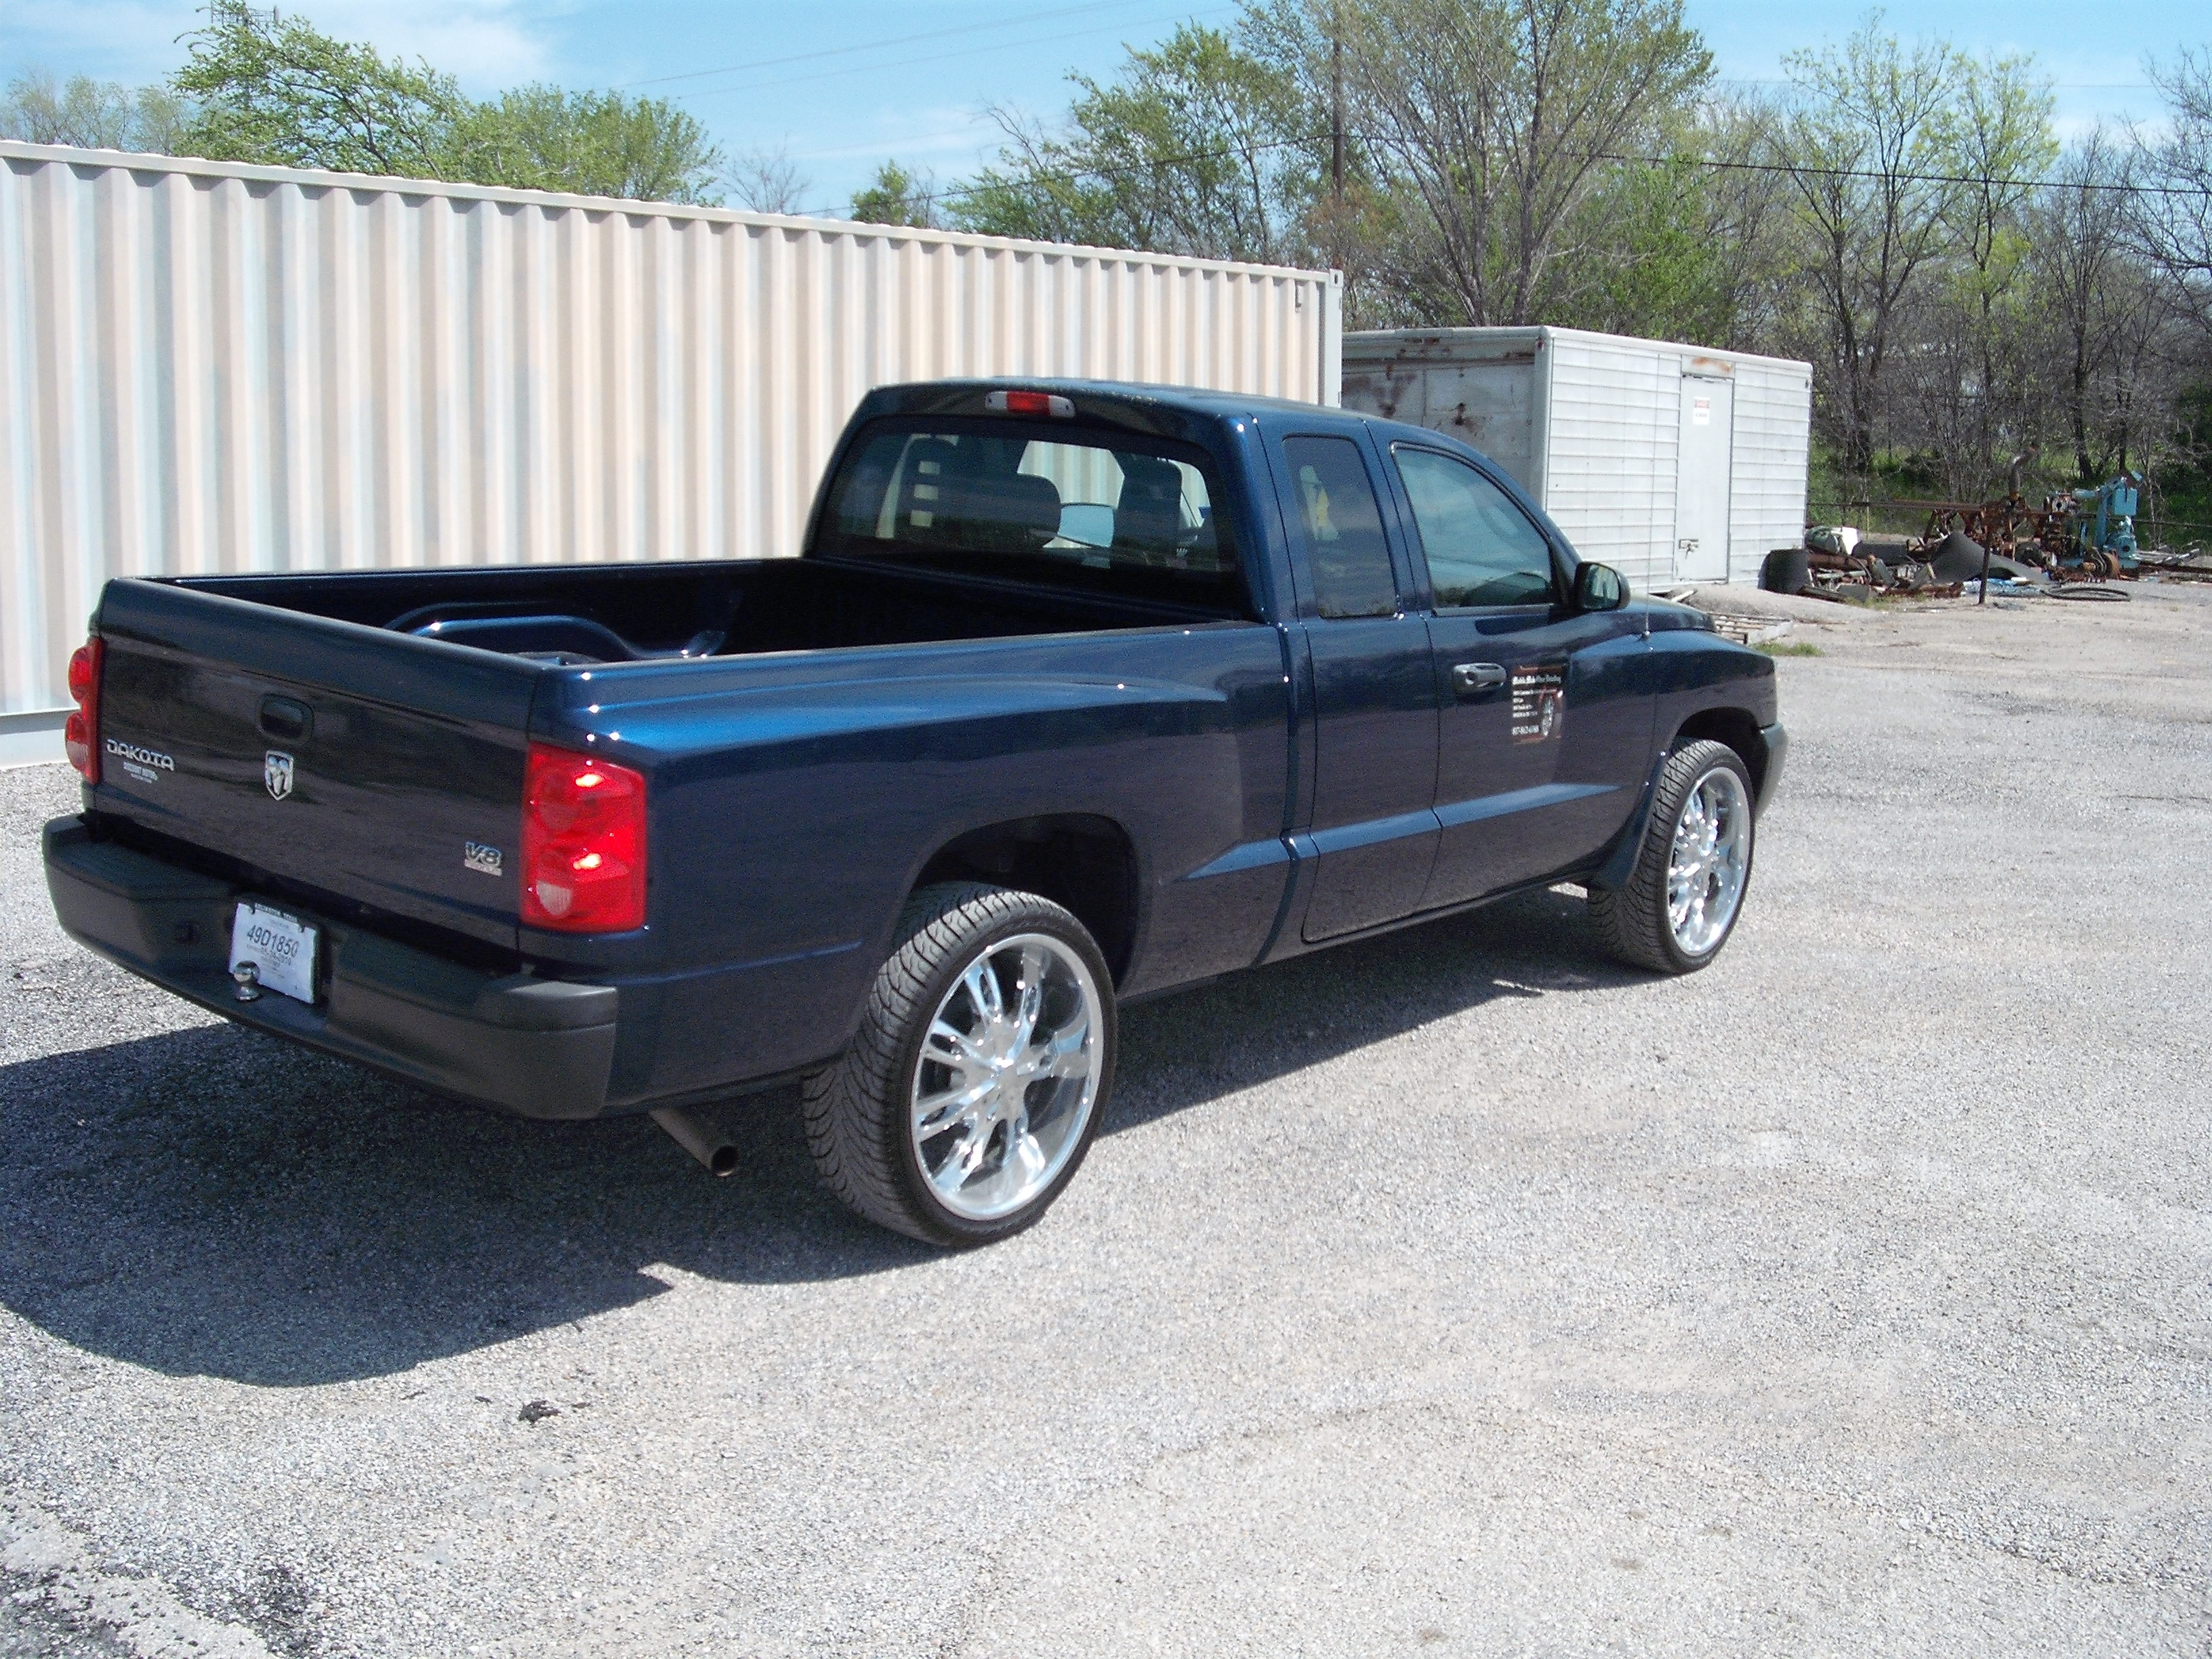 billyocean2 2006 dodge dakota regular cab chassis specs. Black Bedroom Furniture Sets. Home Design Ideas